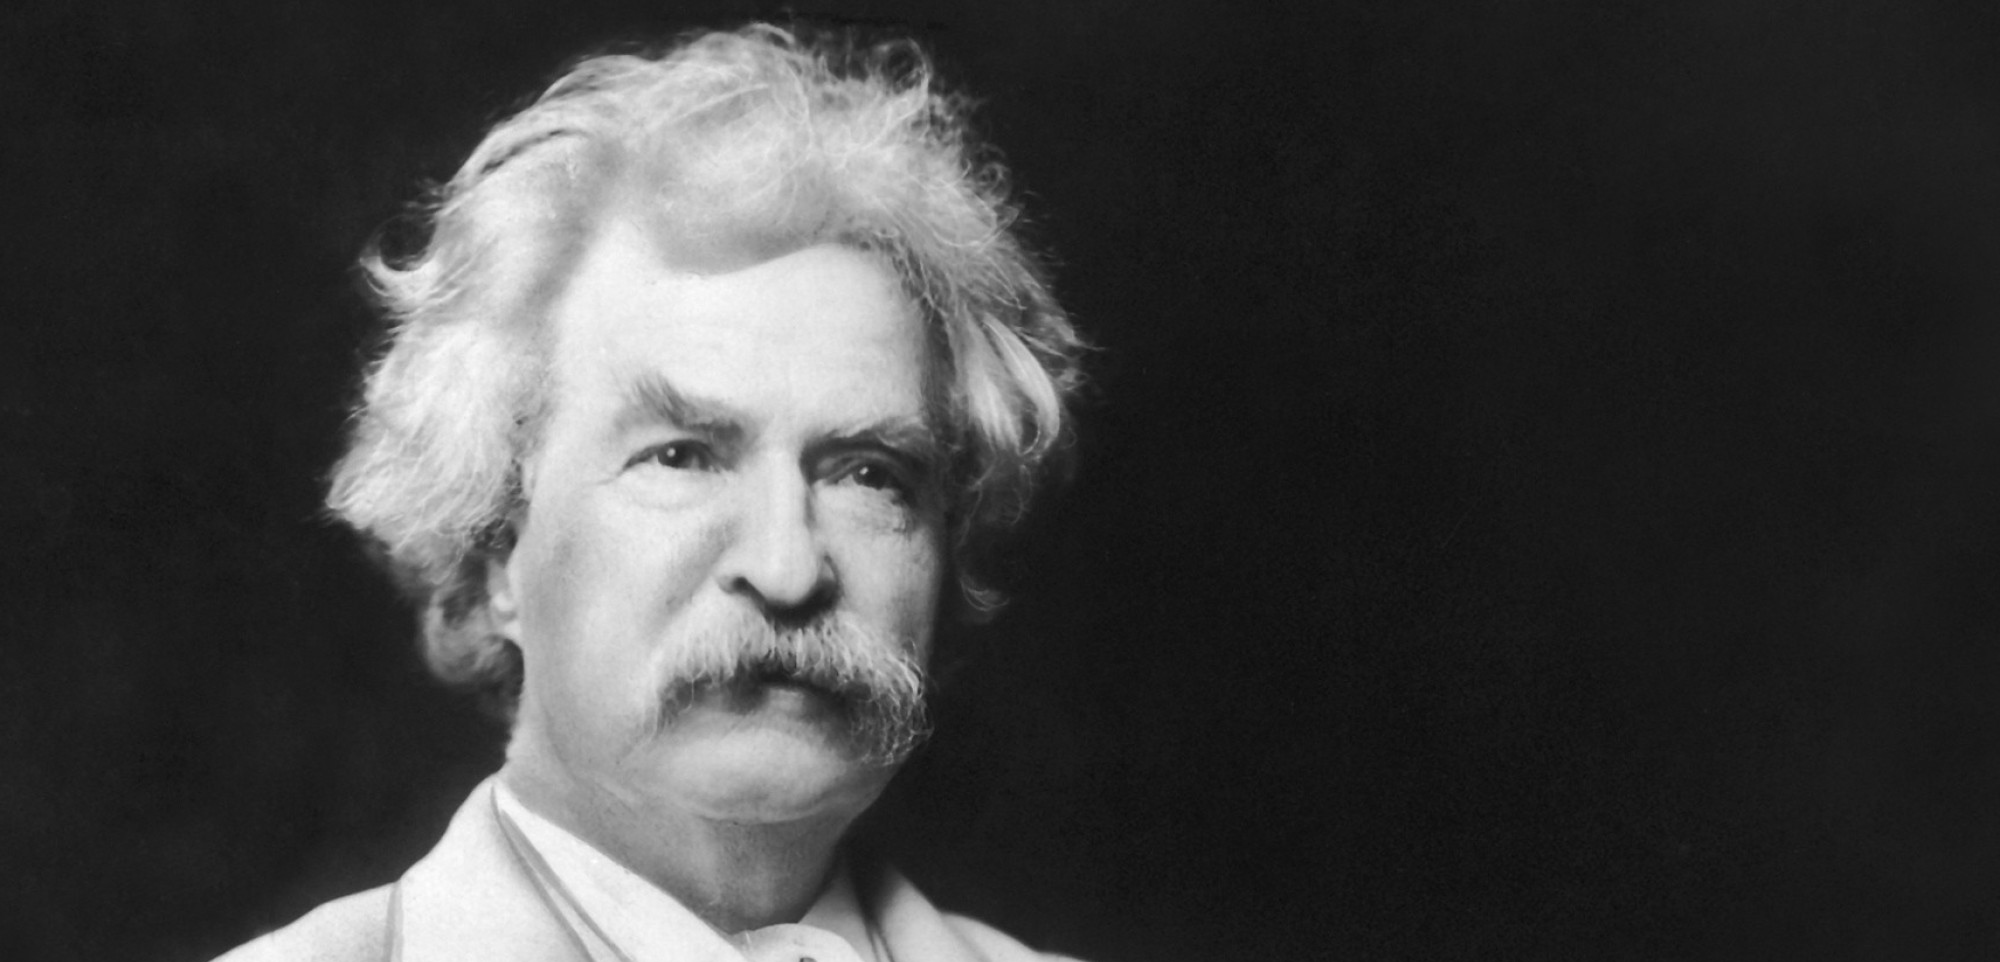 UNITED STATES - CIRCA 1900: Mark Twain (Photo by Buyenlarge/Getty Images)